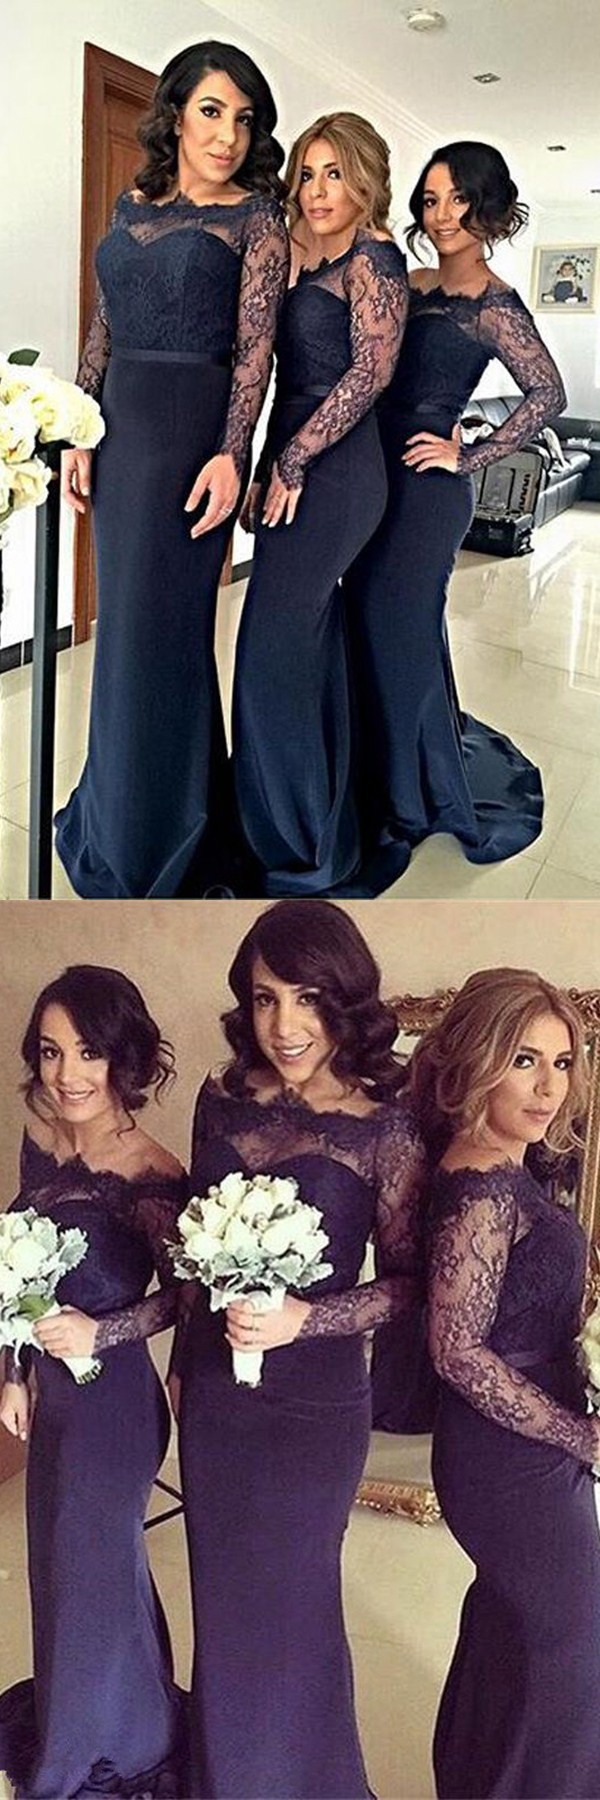 Mermaid offtheshoulder sweep train navy blue satin bridesmaid